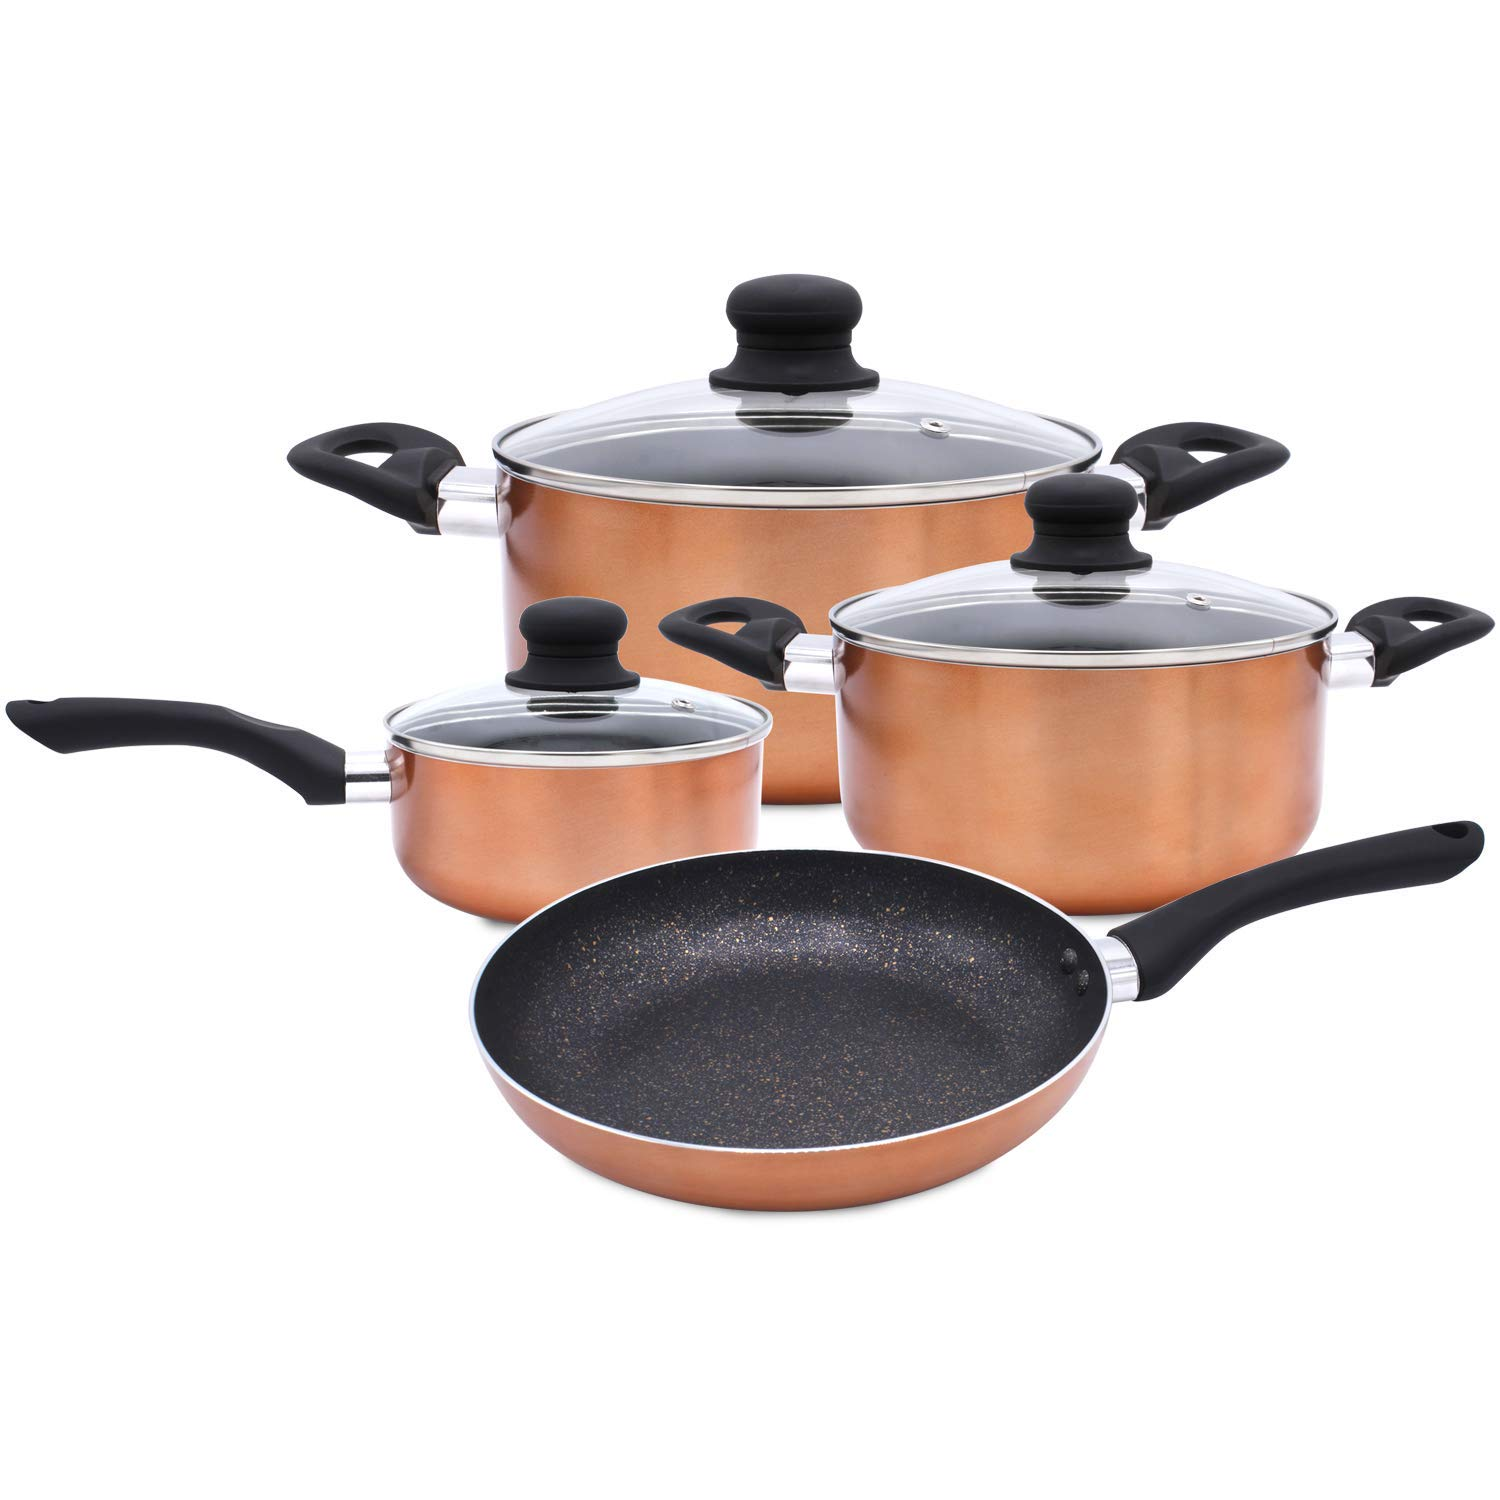 Bergner 7 Pc Cookware Set Marble Coating Induction Cooking Nonstick Saucepan Frypan Cerole Pots And Pans